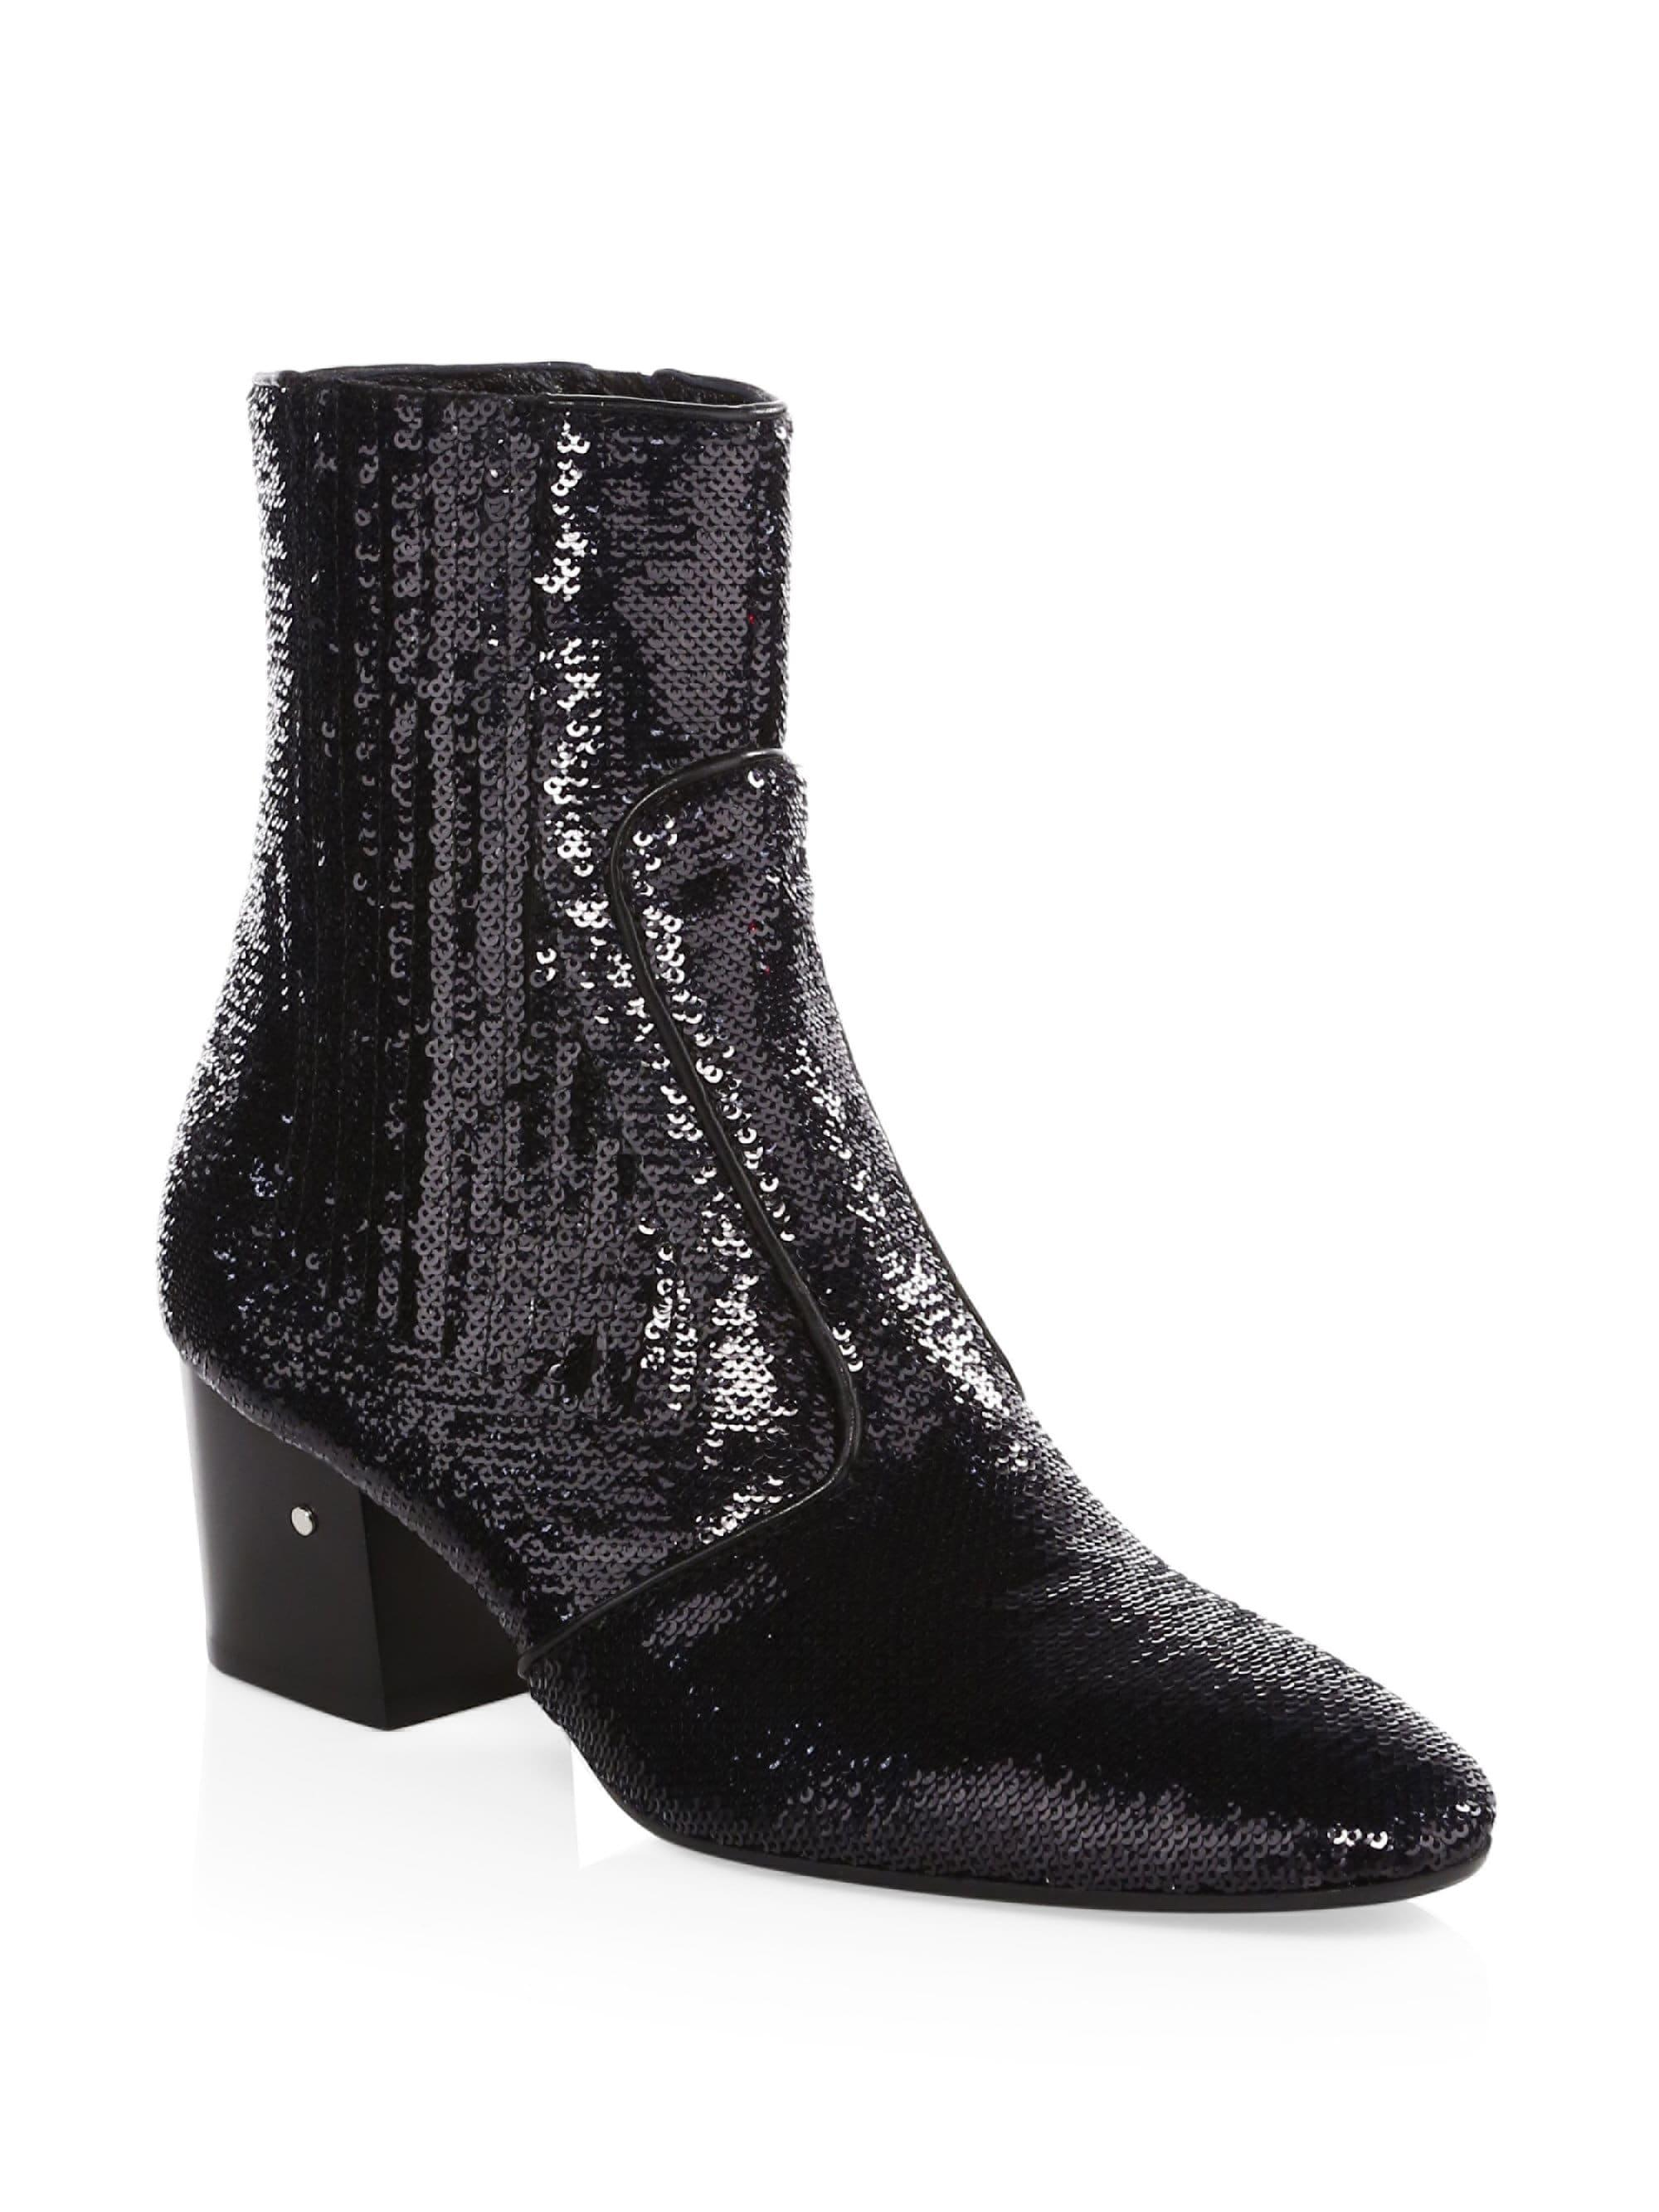 551e52ceded laurence-dacade-black-Womens-Ringo-Sequin-Booties-Black-Size-35-5.jpeg